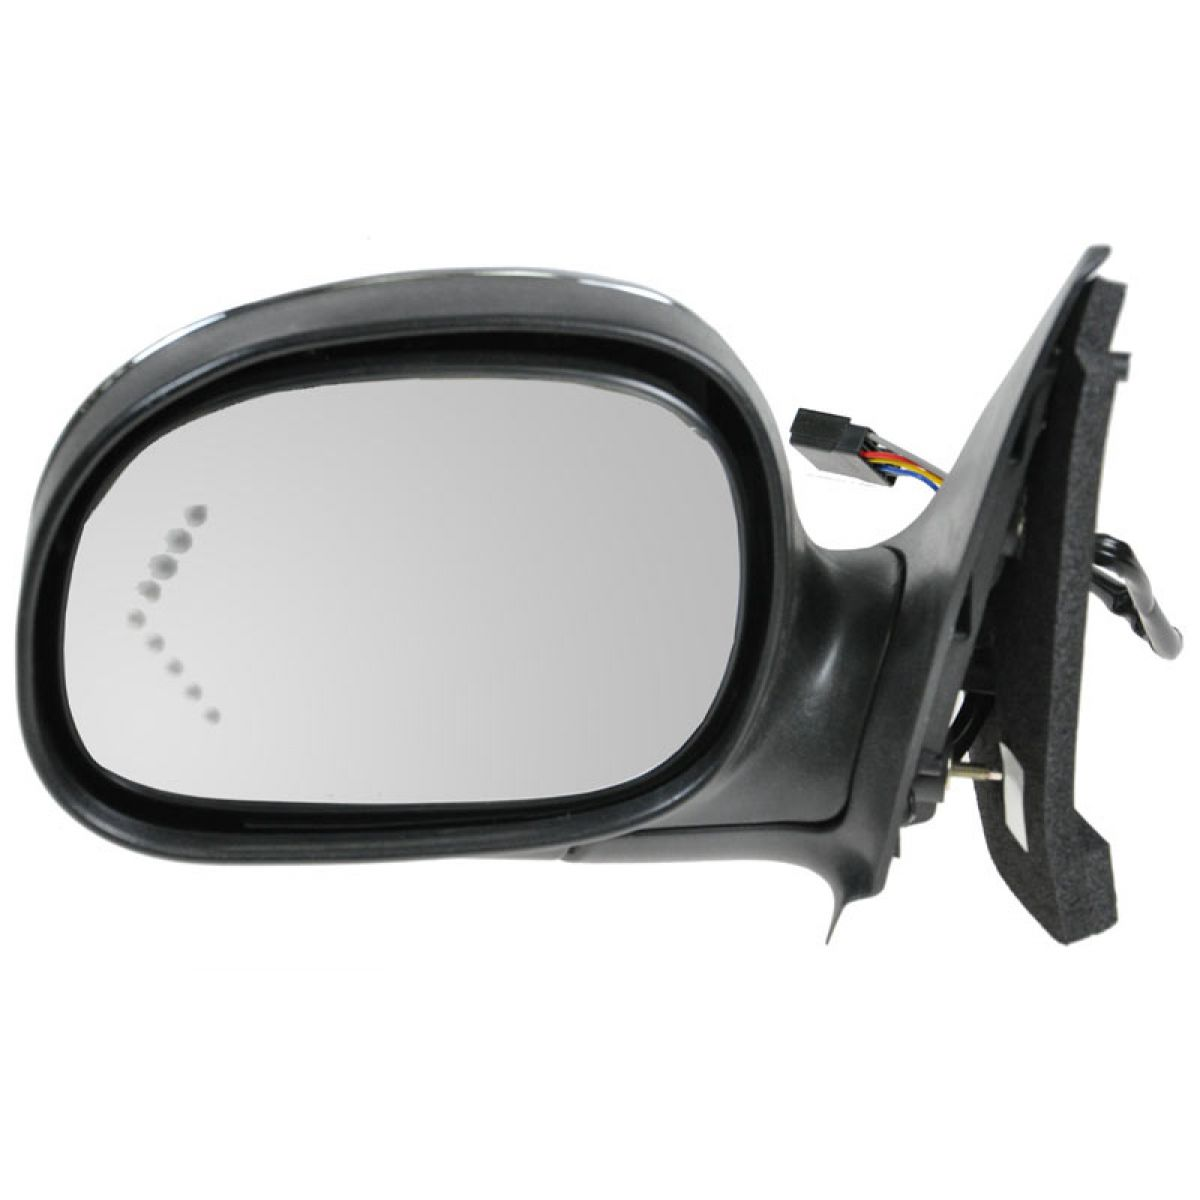 Manual Folding Power for EXPEDITION 97-99 MIRROR LH Non-Heated w// Signal Lig